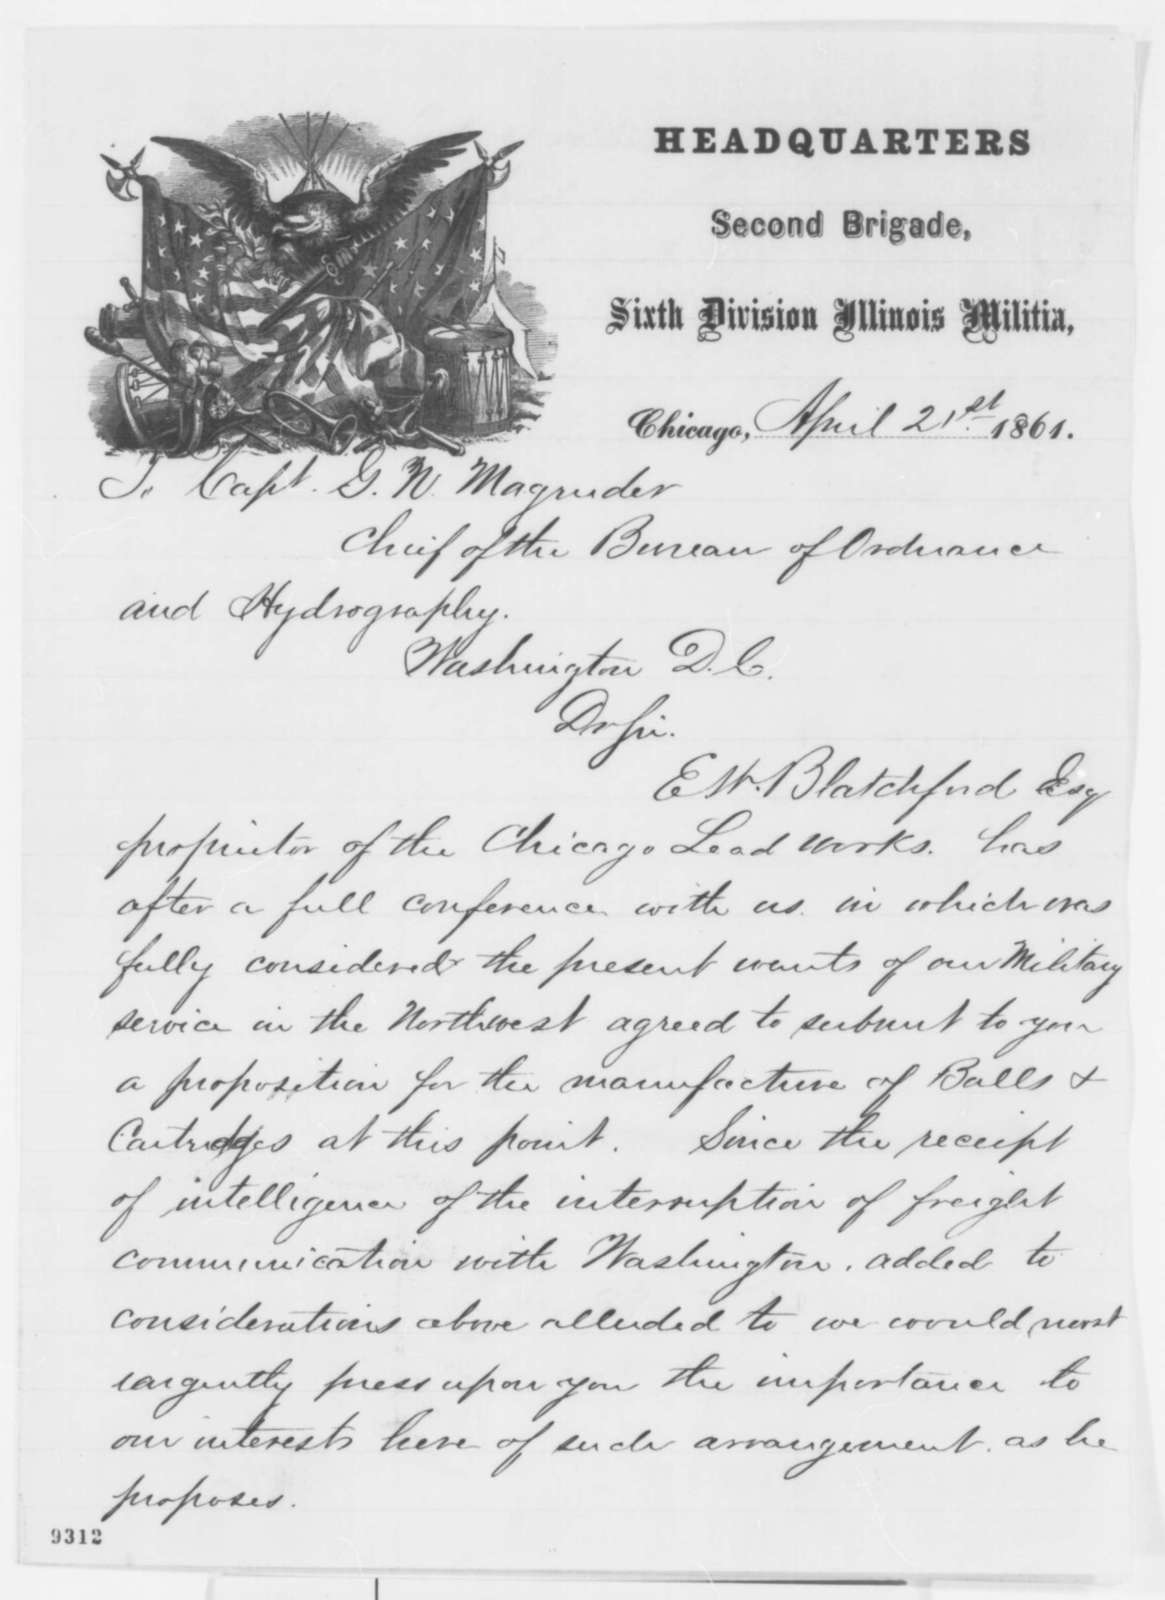 Joseph H. Tucker and R. N. Swift to G. N. Magruder, Sunday, April 21, 1861  (Recommendation)